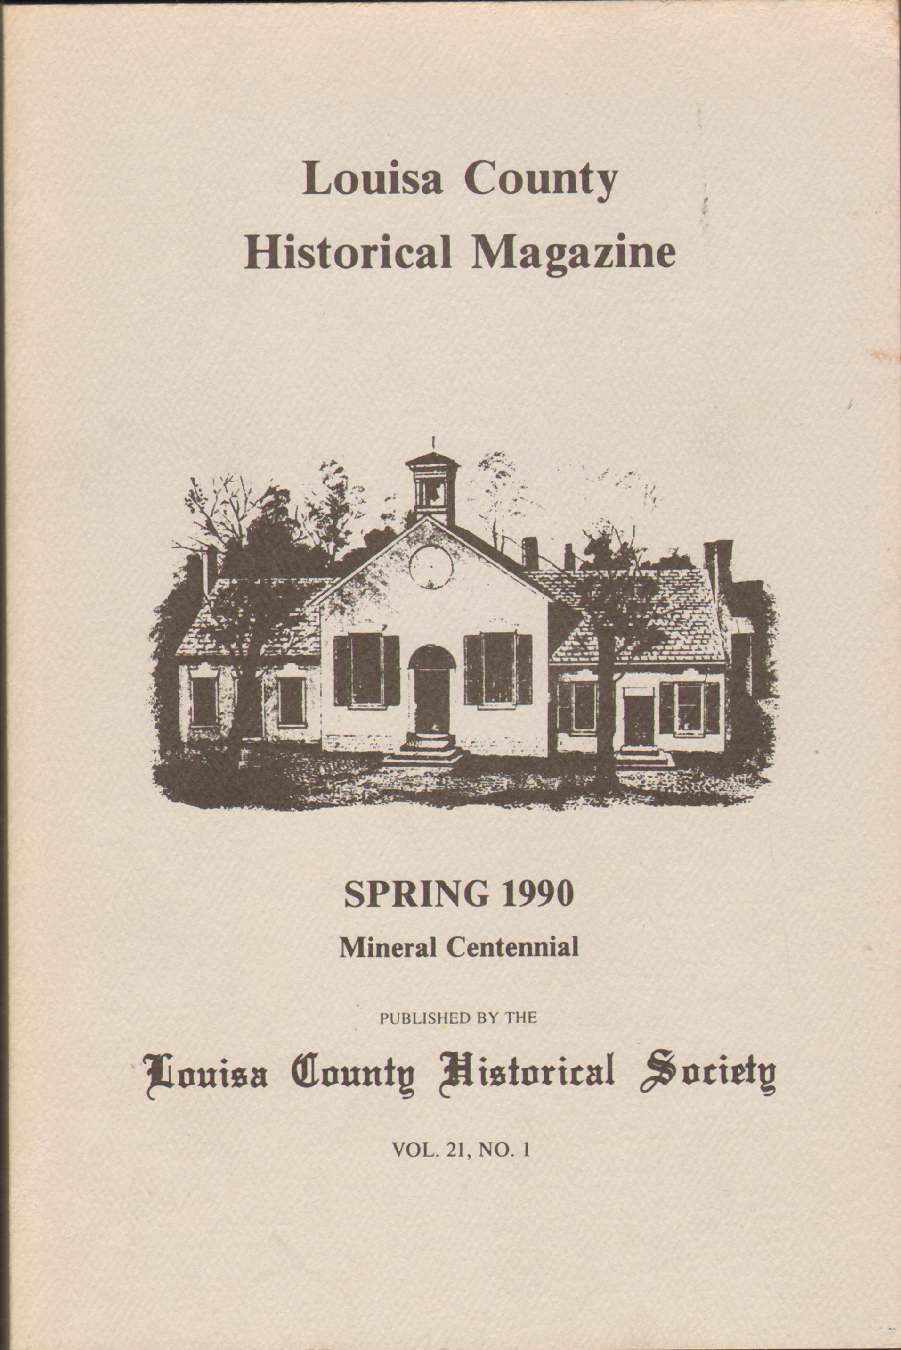 LOUISA COUNTY HISTORICAL MAGAZINE Mineral Centennial Spring 1990, Abercrombie, Janice L.